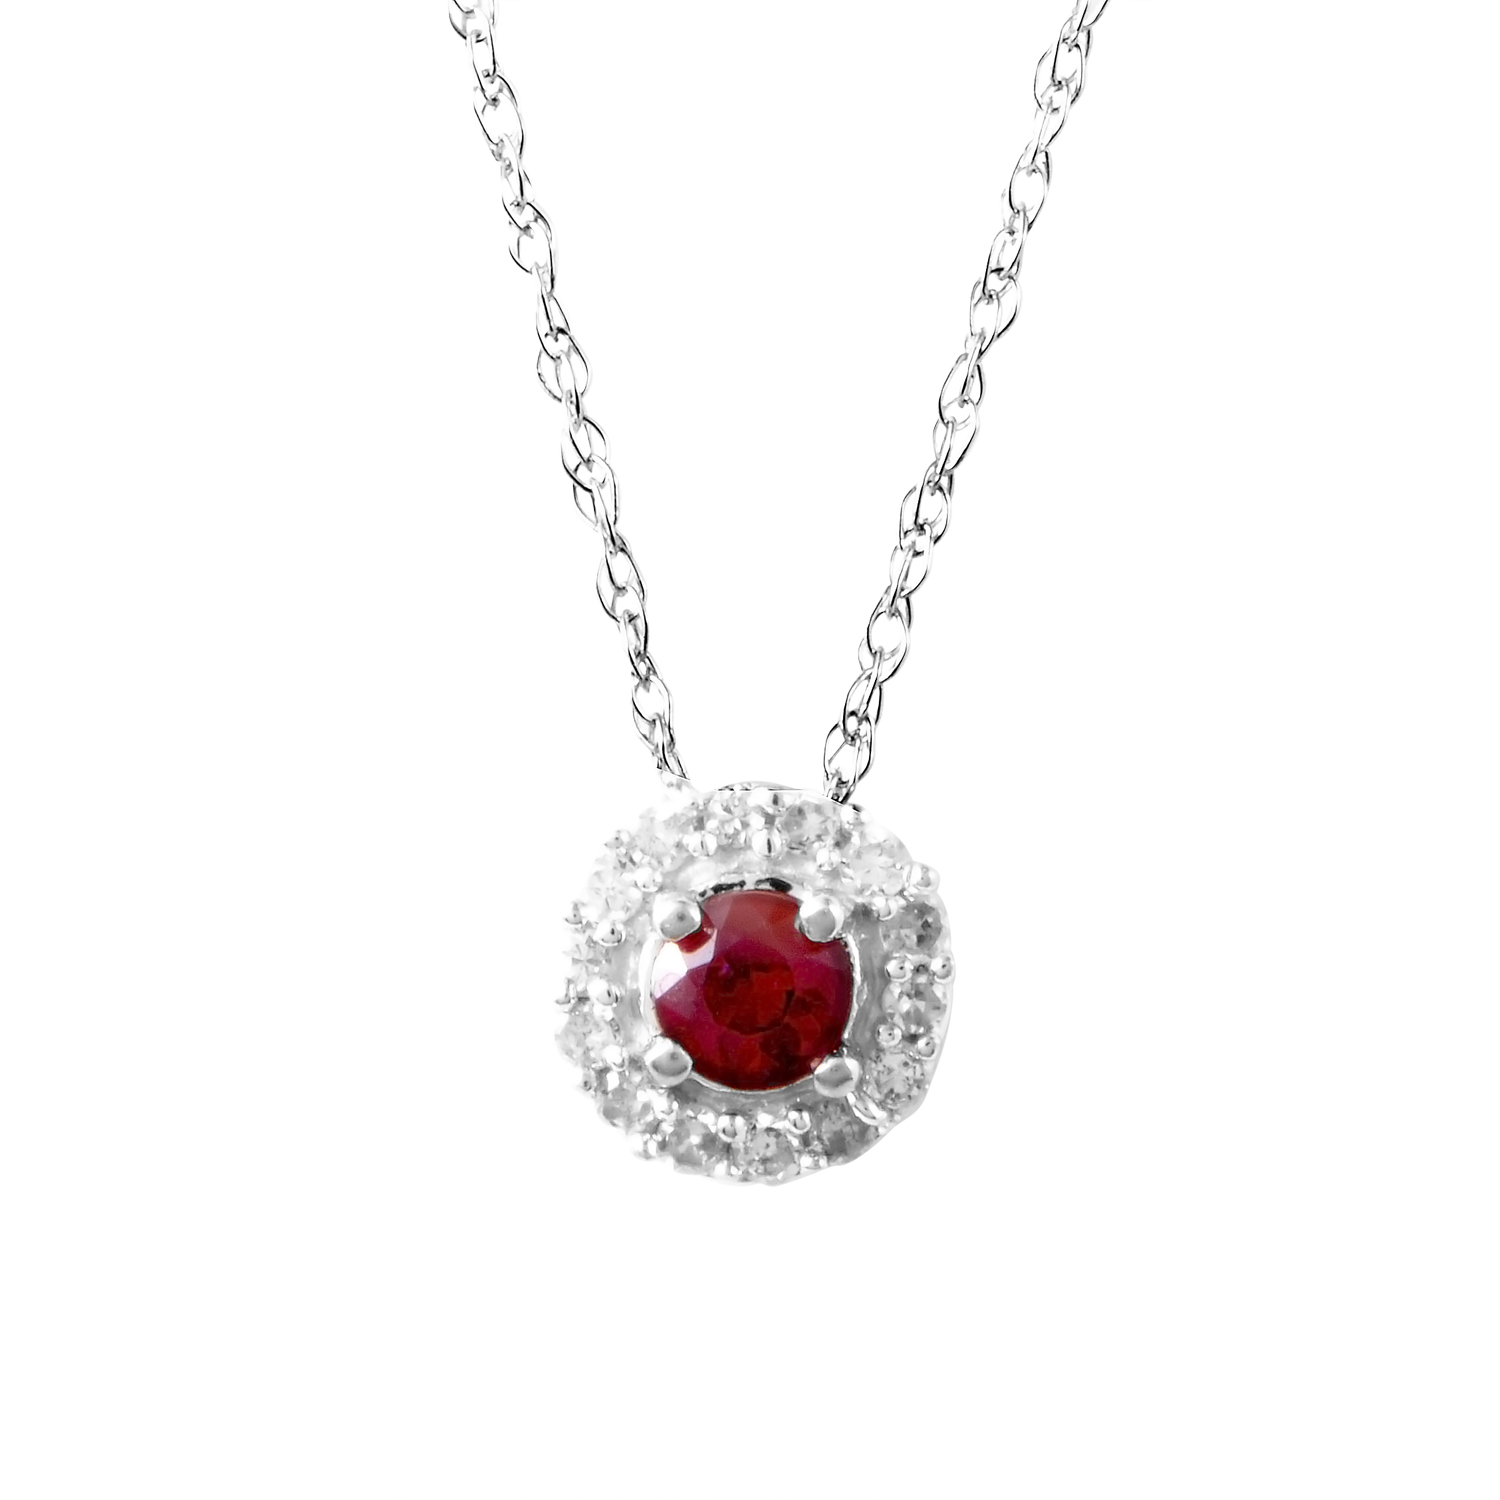 14K White Gold Diamond & Ruby Pendant Necklace PD4-15220WRU